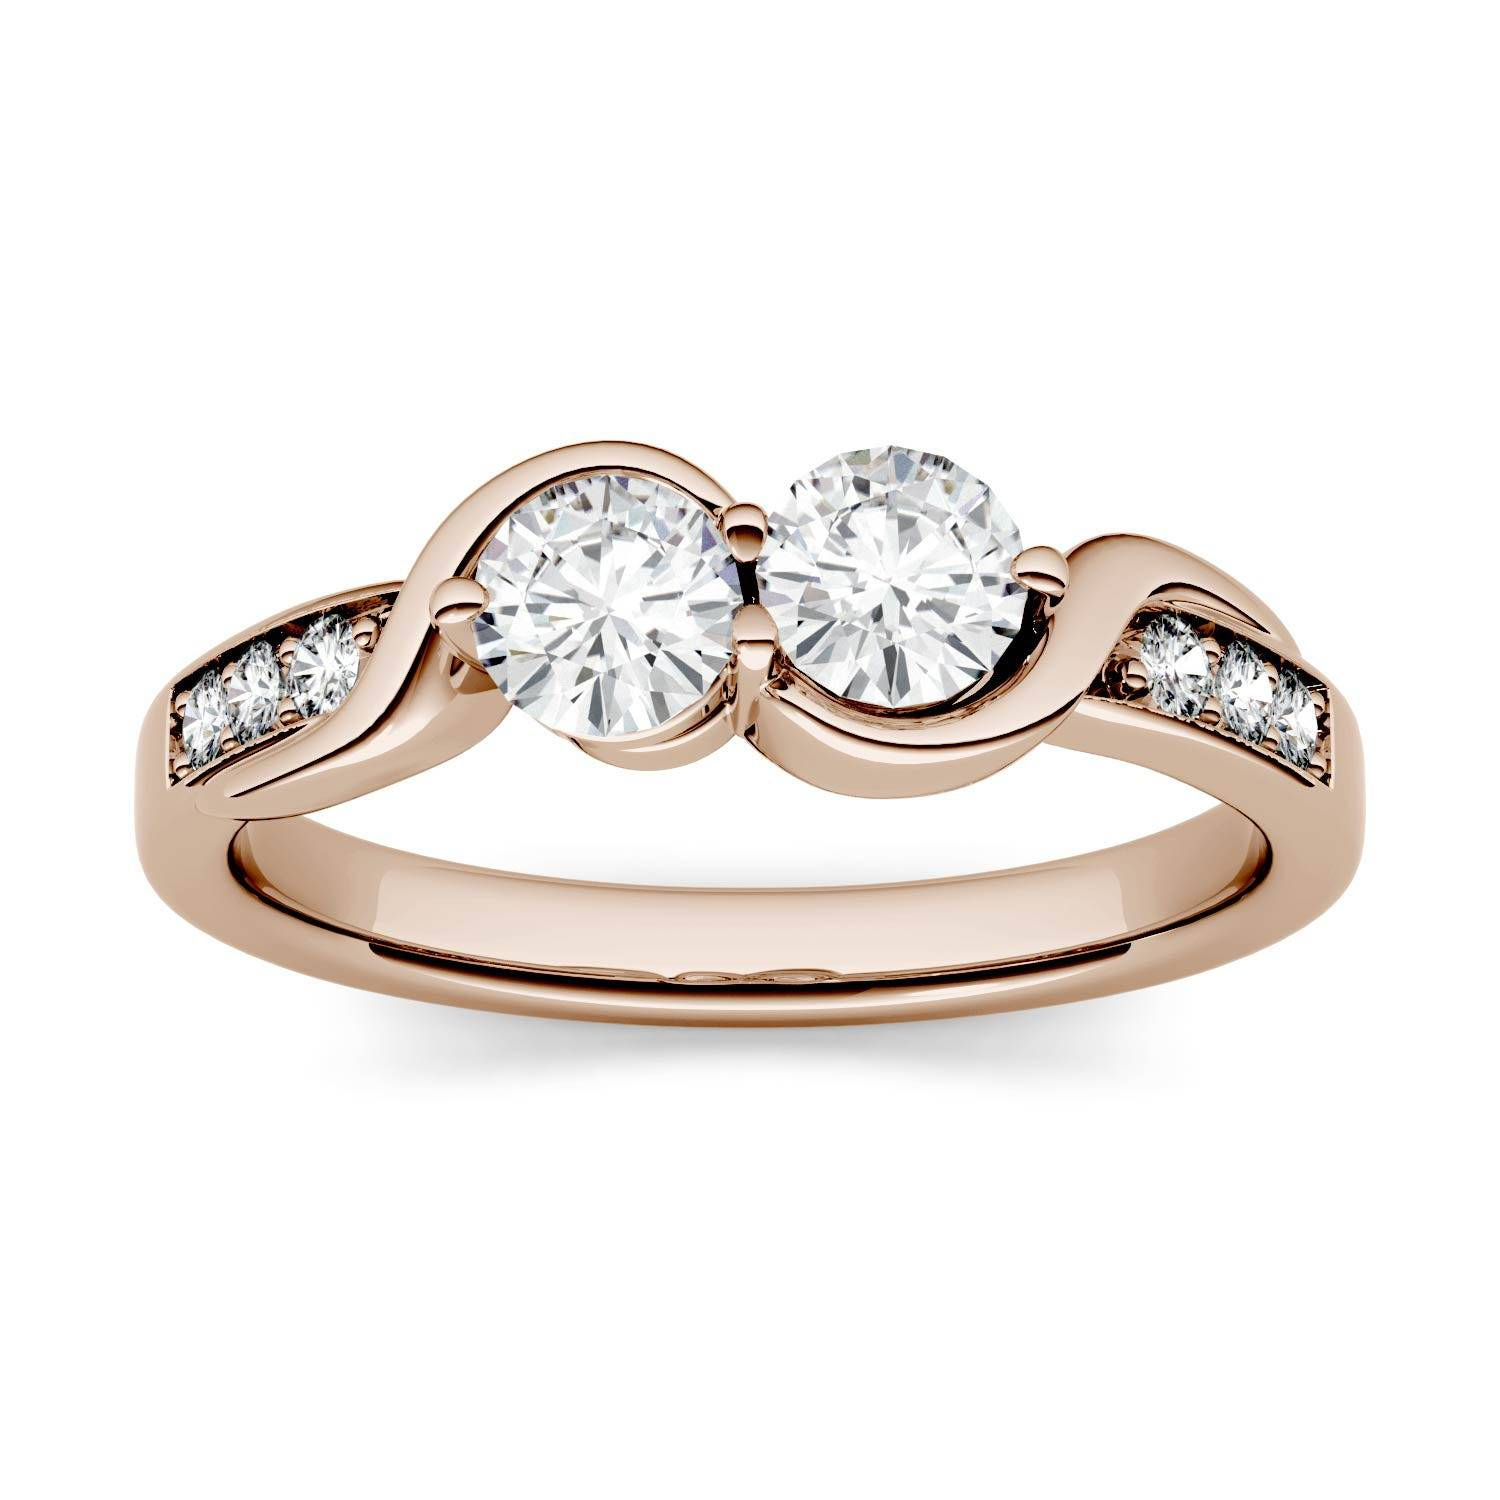 Charles & Colvard Two Stone Swirl with Side Accents Wedding Ring in 14K Rose Gold, Size: 7, 1.12CTW Round Forever One - Colorless Moissanite Charles & Colvard  - Rose Gold - Size: 7